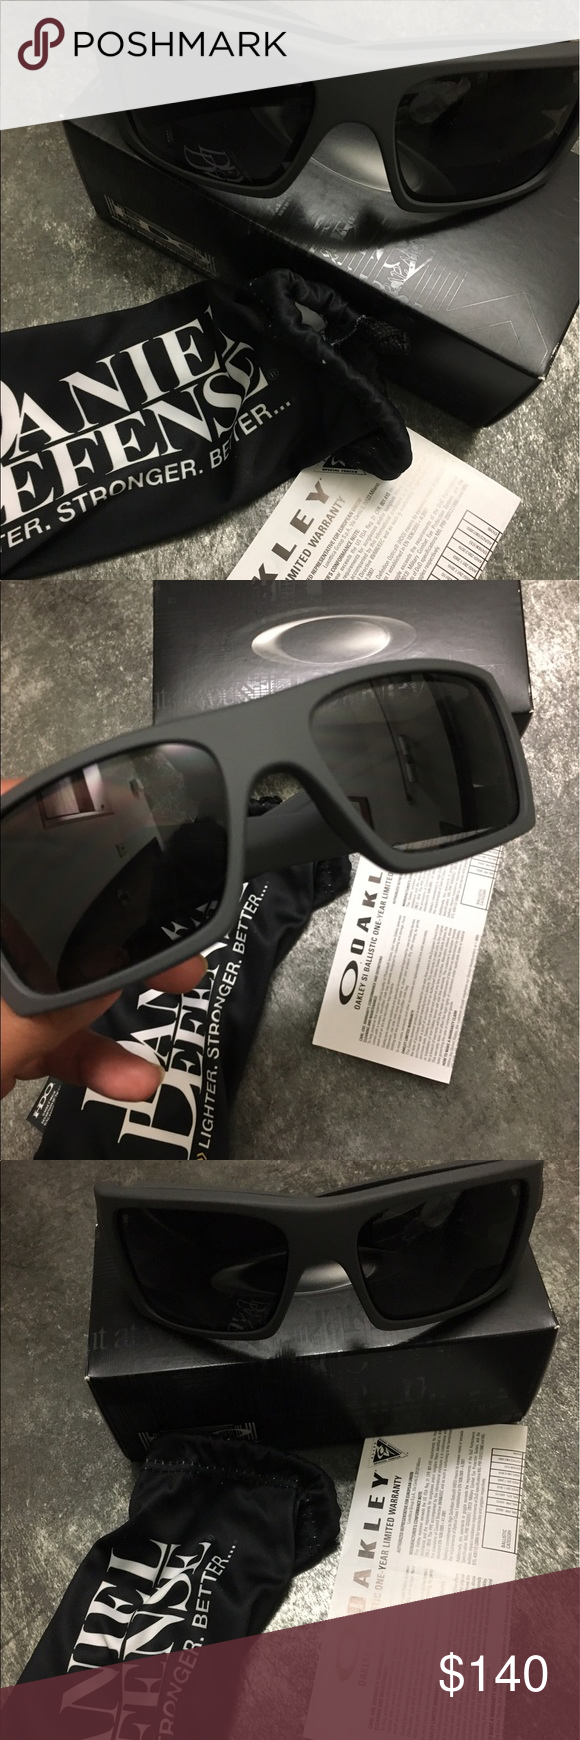 b55c42bd60 Oakley SI det cord Daniel defense NEW Cerakote collection daniel defense.  cerakote tornado grey Oakley Accessories Sunglasses